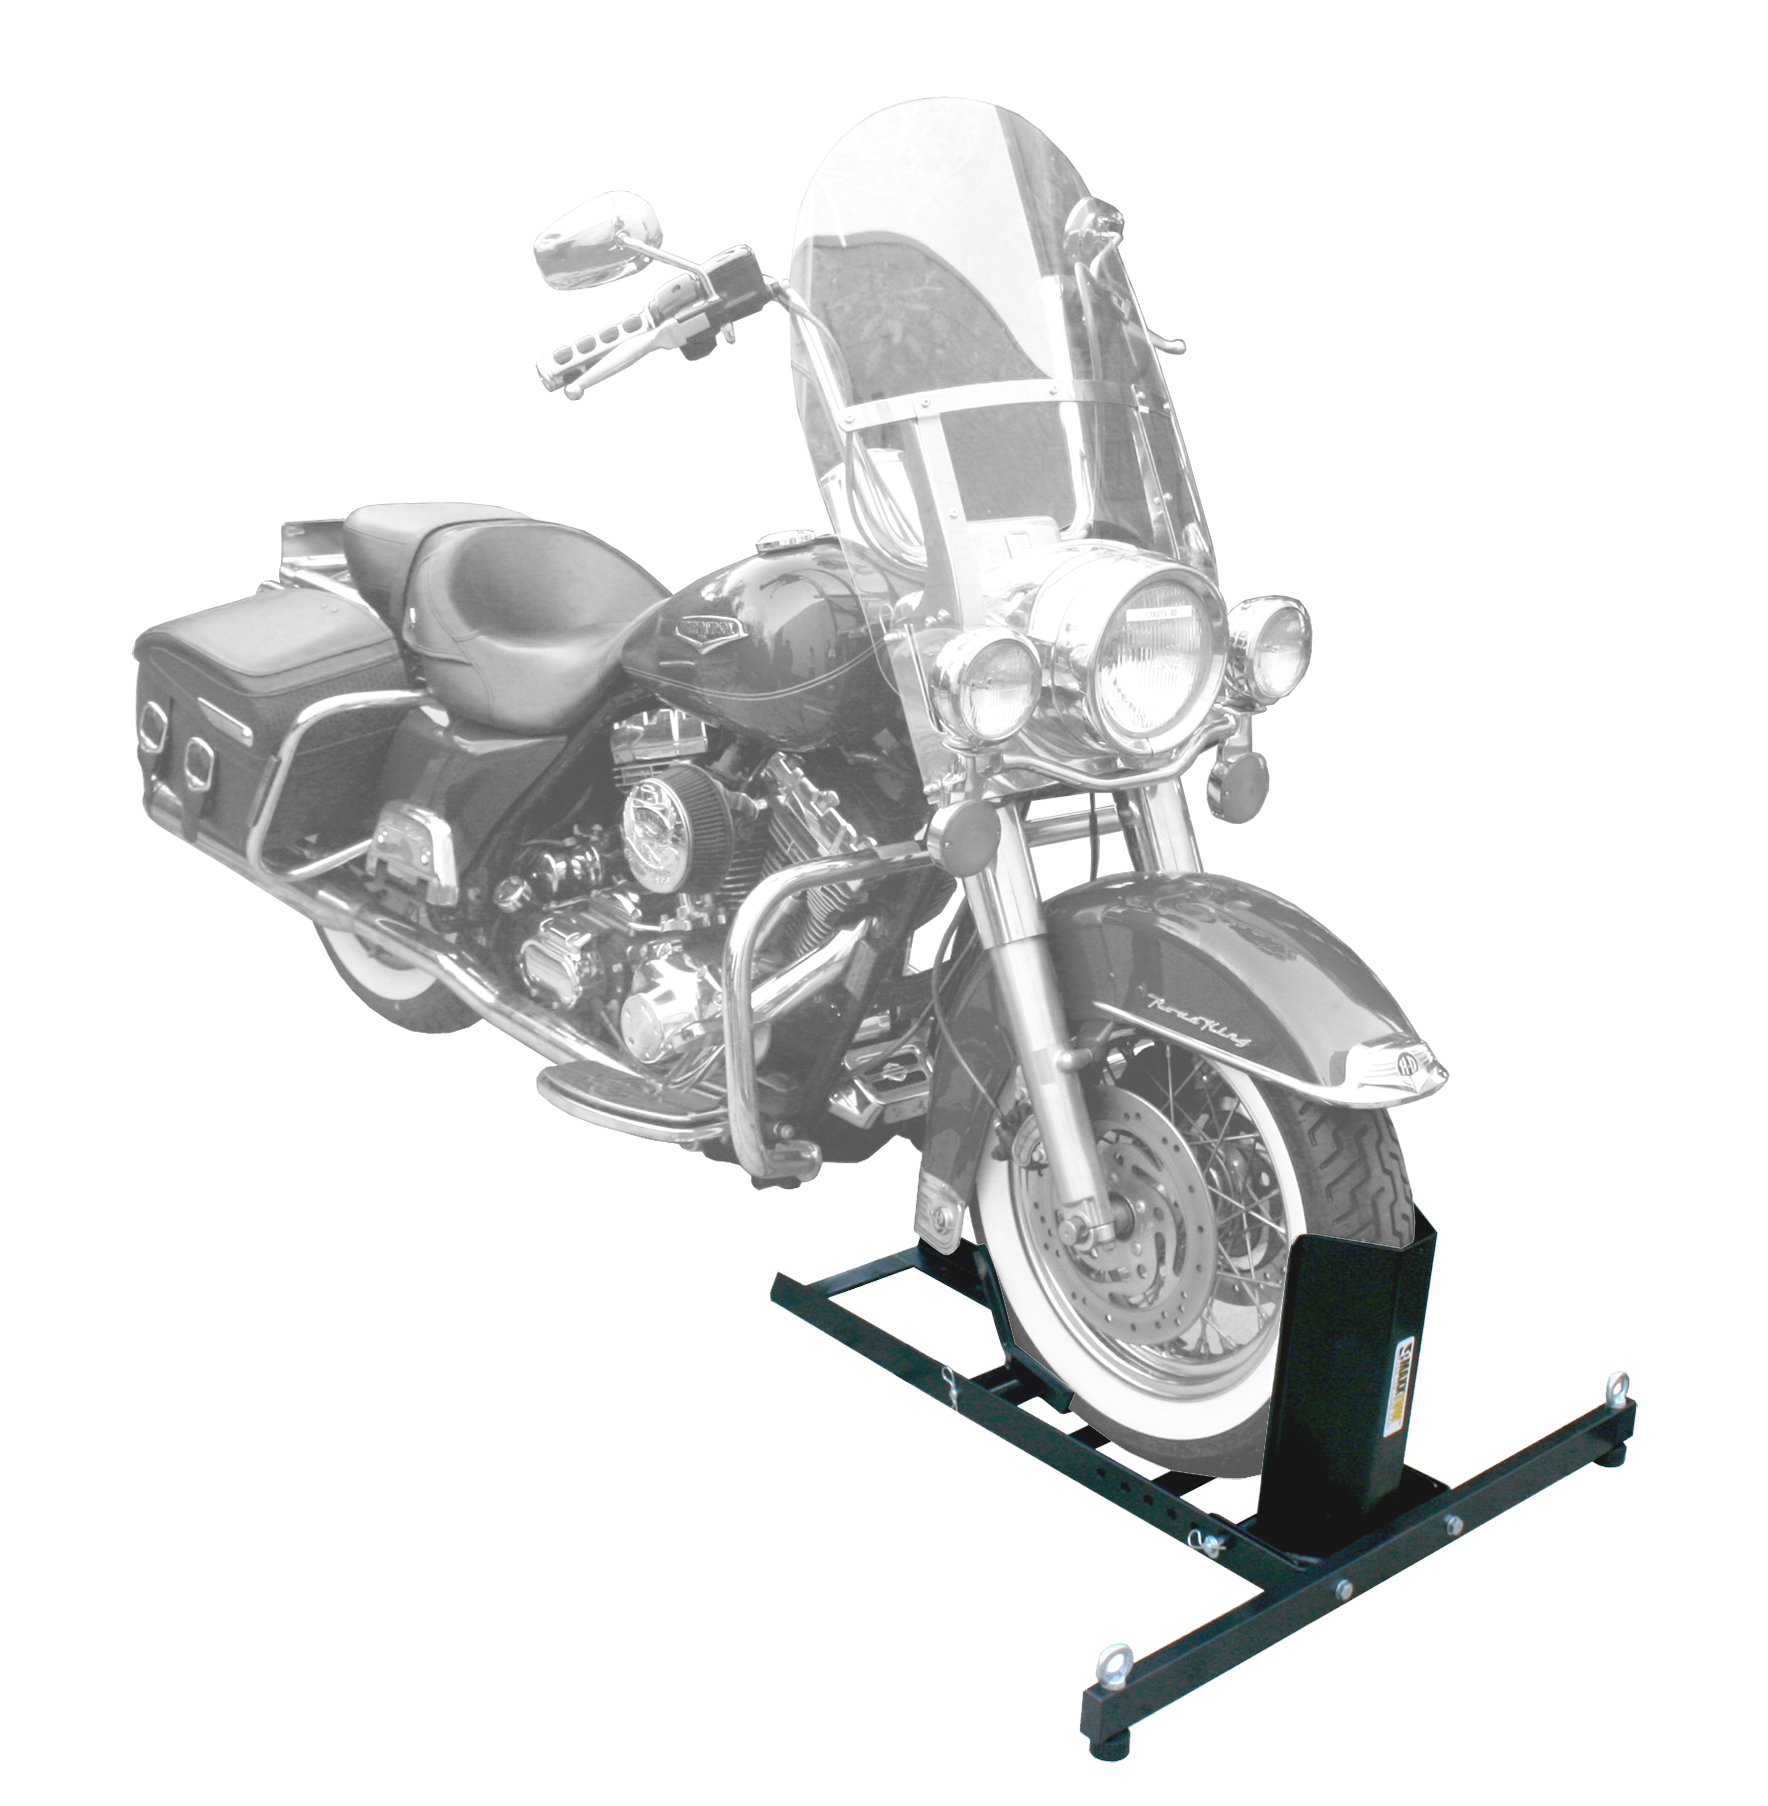 70271 Motorcycle Wheel Chock and Stand Photo A.jpg